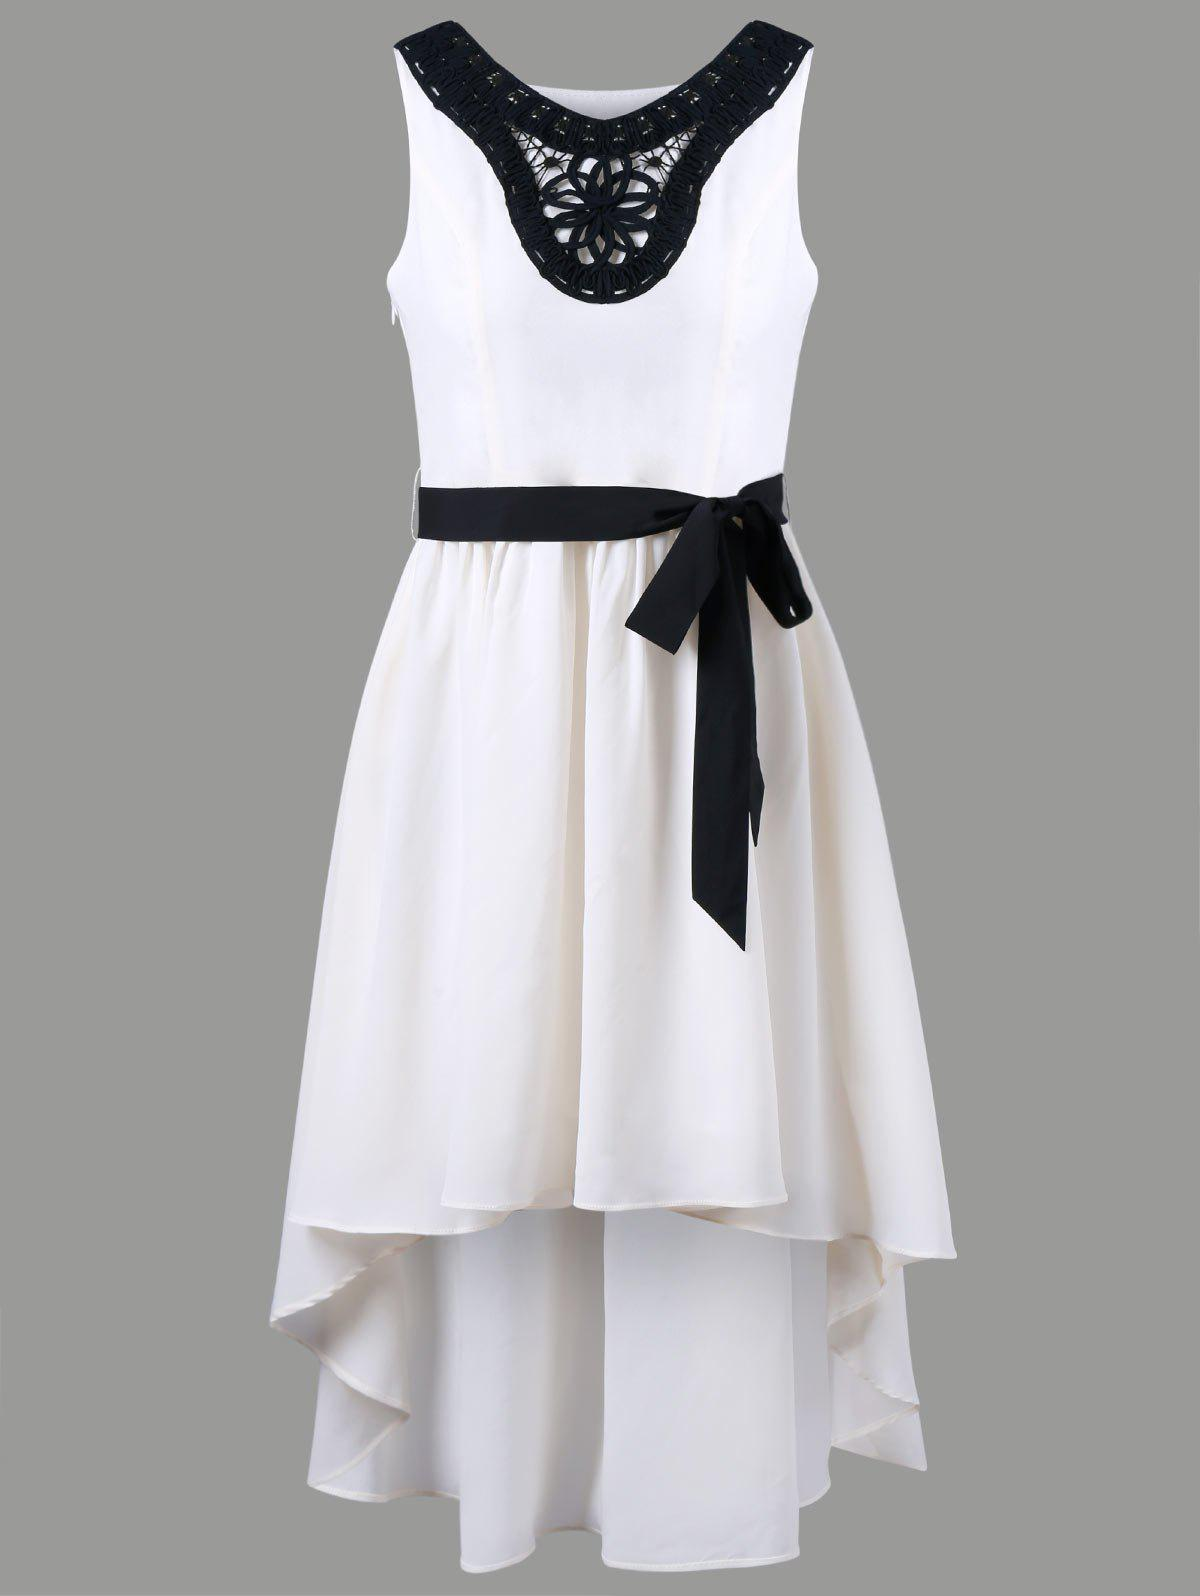 V Neck Applique Chiffon High Low Dress - OFF WHITE XL